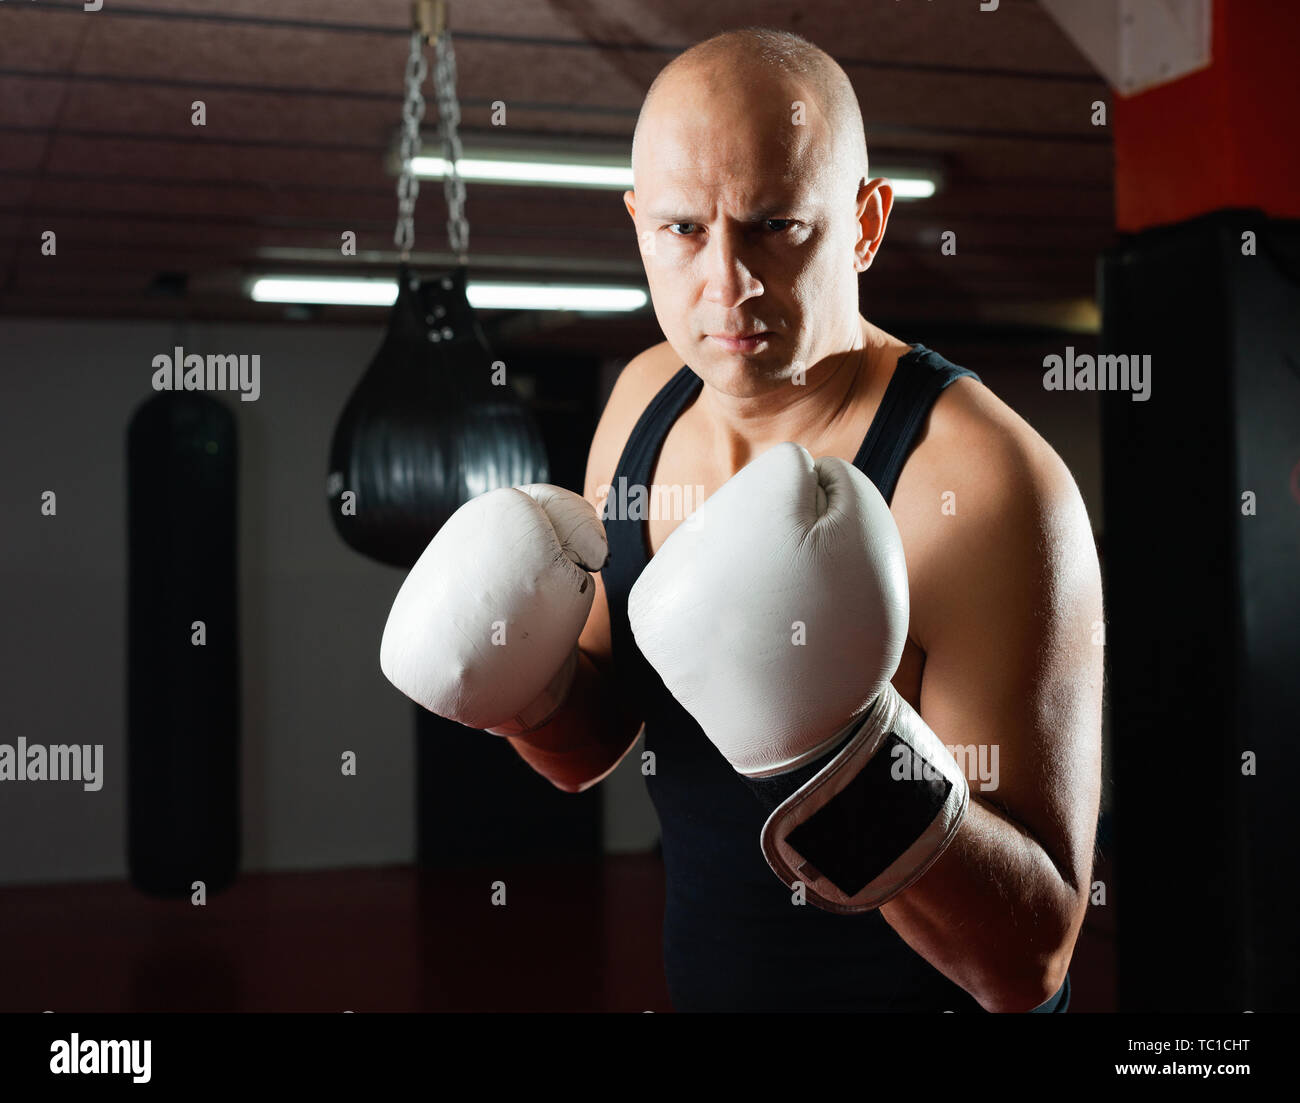 Potrait of  smiling man boxer who is training in gym - Stock Image